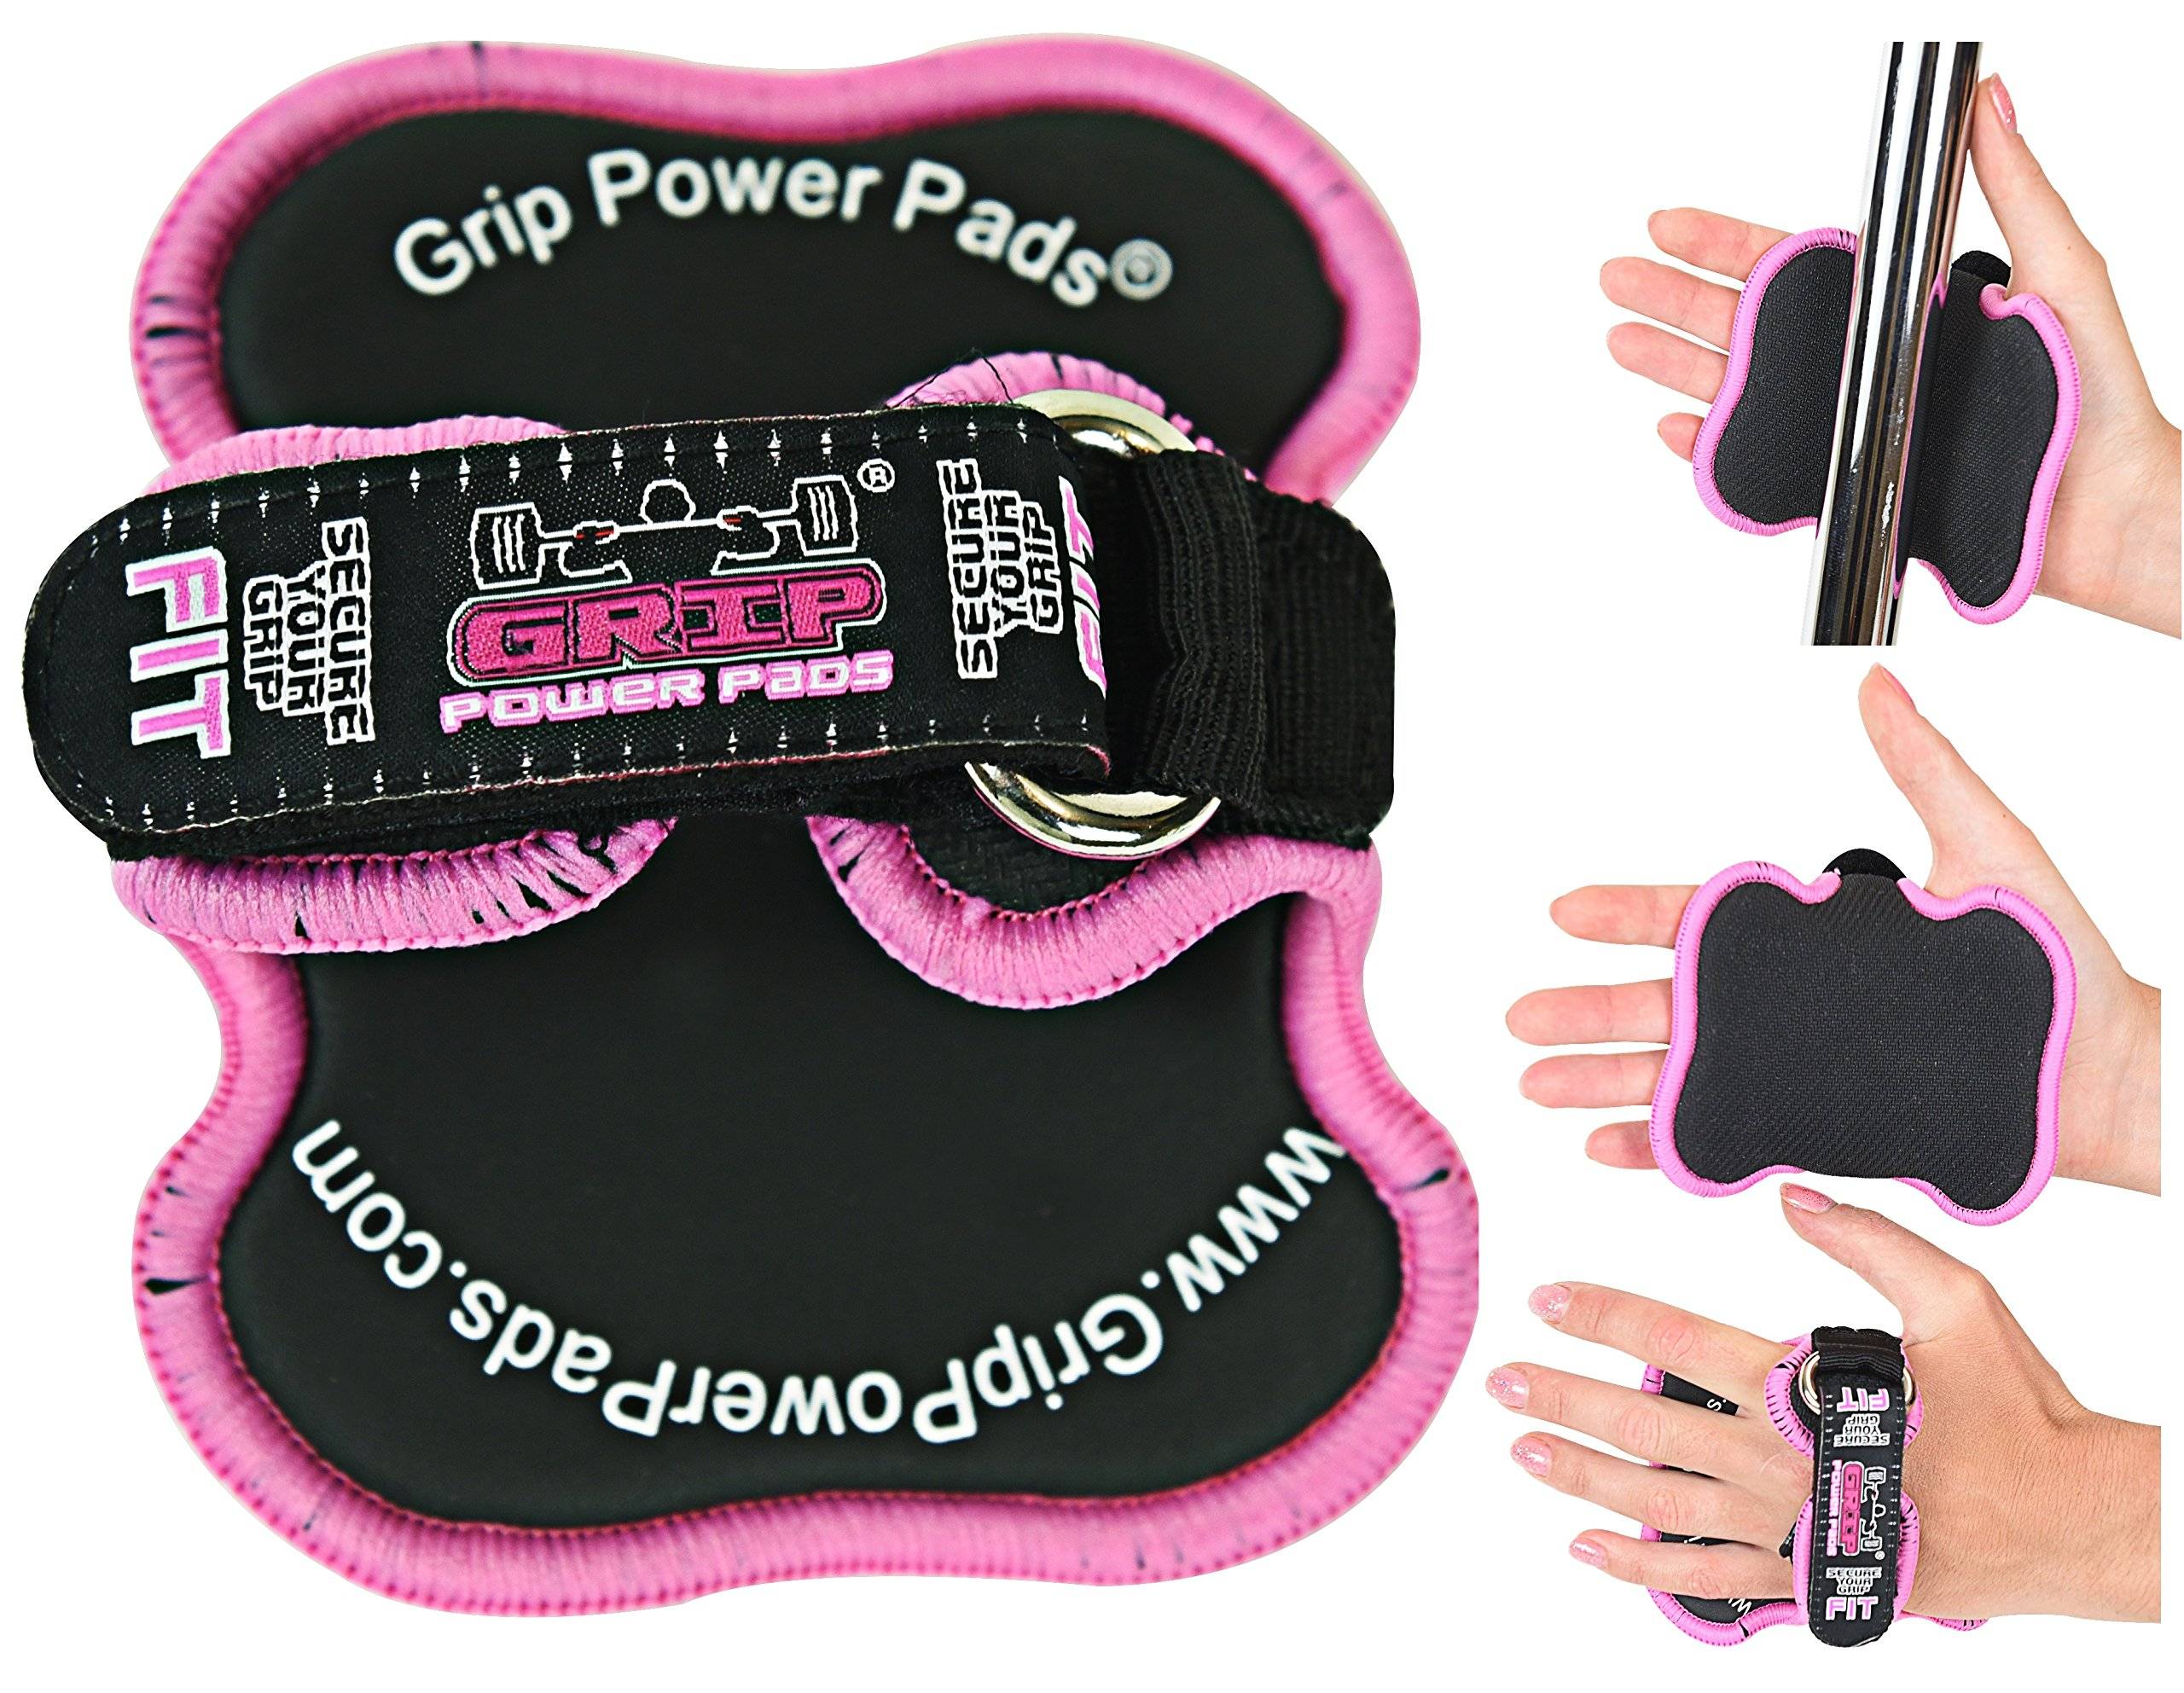 Women's Fitness Gloves Grip Power Pads FIT - Lifting Grips The Alternative To Gym Gloves Workout Gloves (Pink) by Grip Power Pads